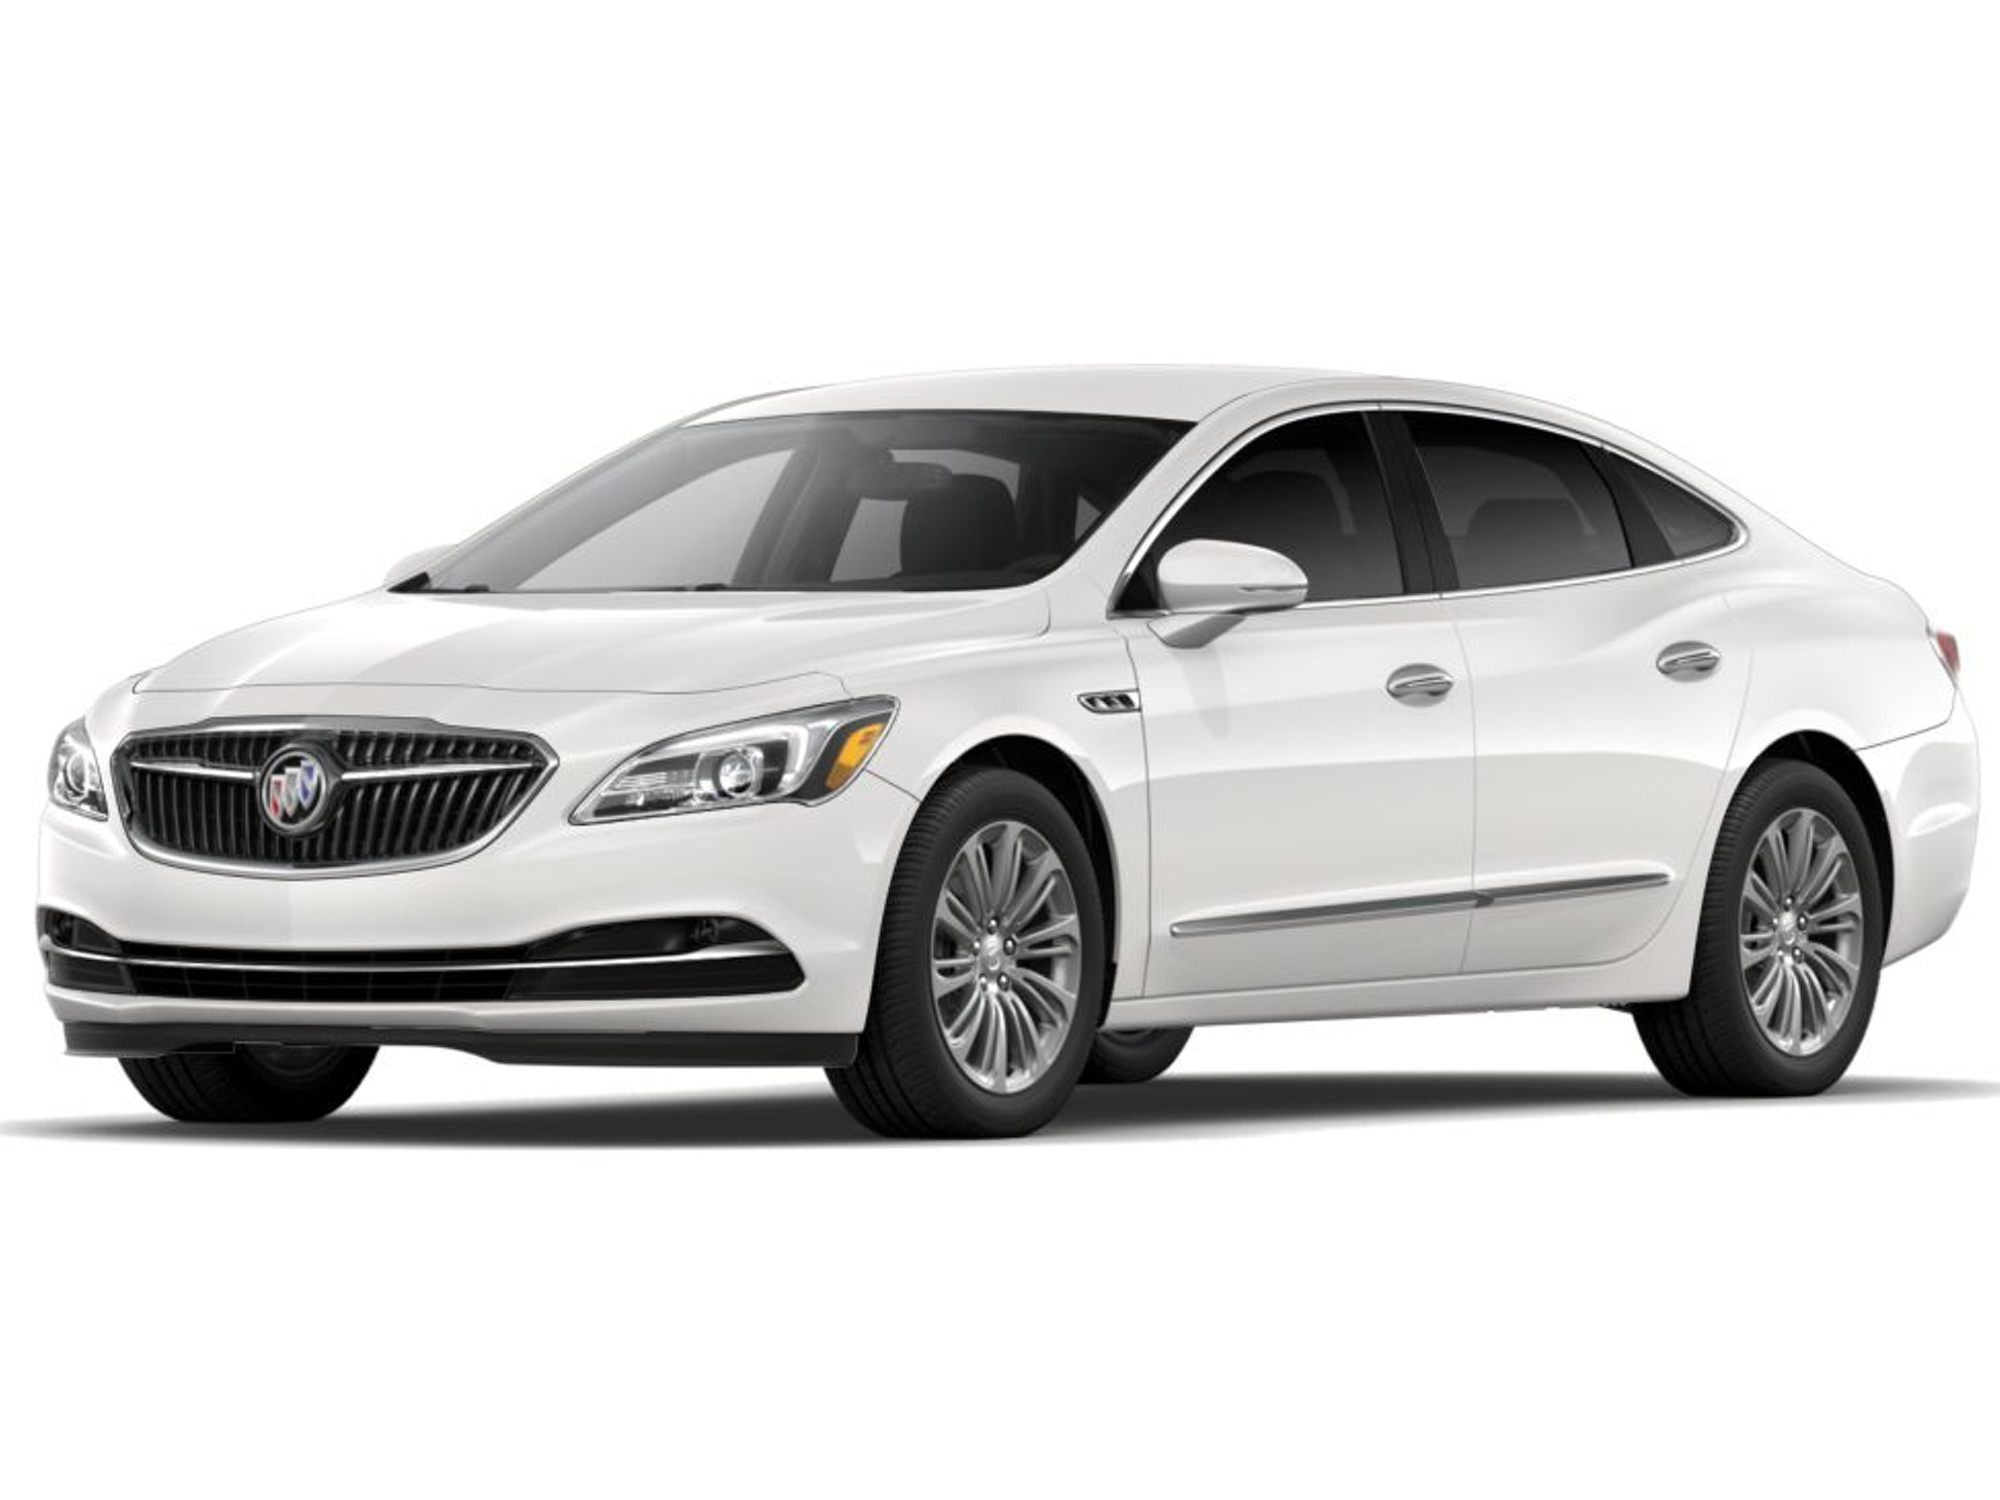 2019 Buick Lacrosse Exterior Colors | Gm Authority 2022 Buick Lacrosse Exterior Colors, Interior Colors, Dimensions